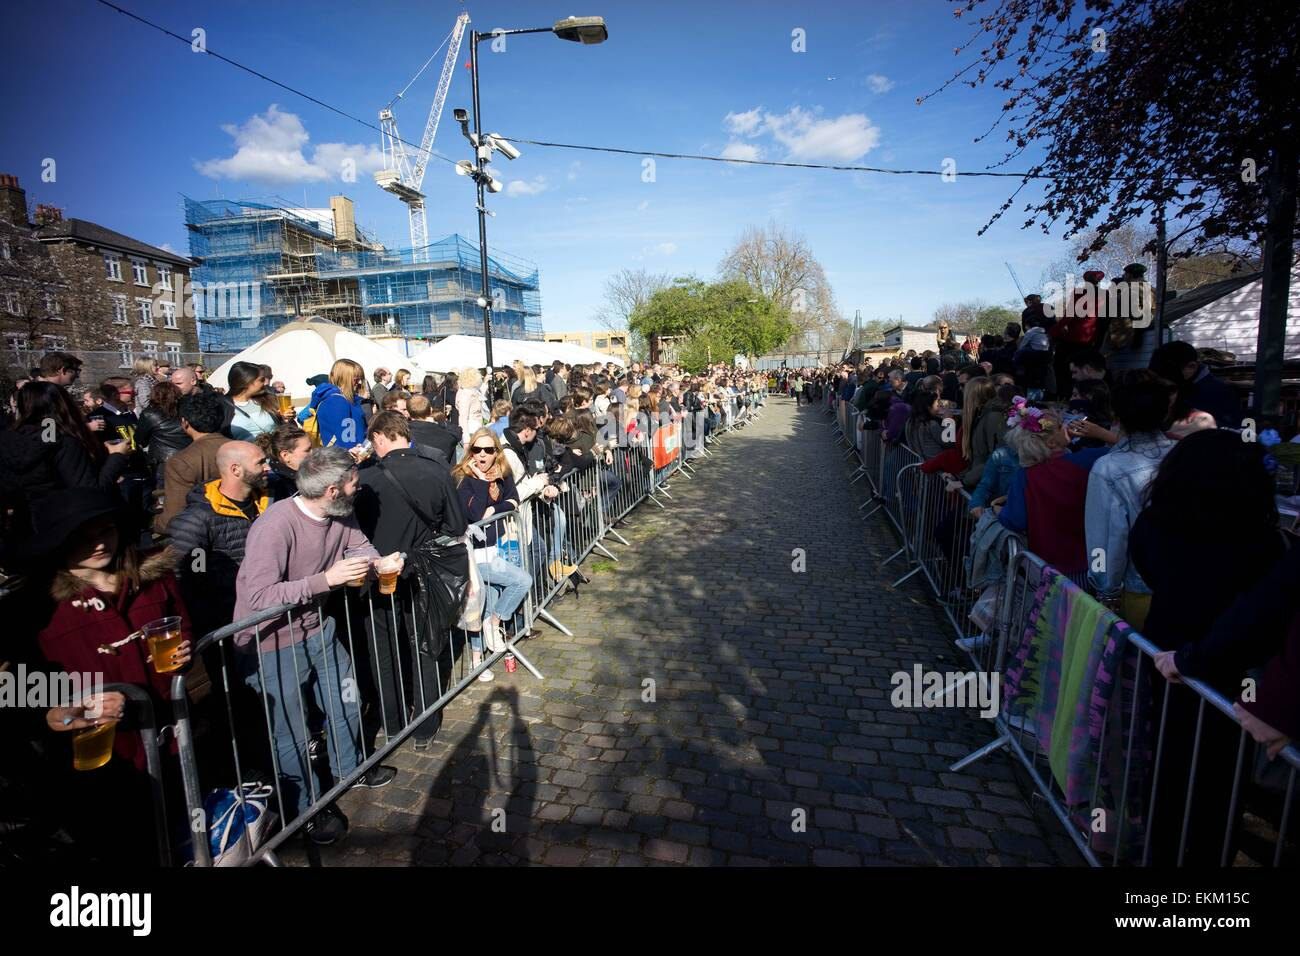 London, United Kingdom. 11th Apr, 2015. Both side of the race track were filled with spectators. Annual goat racing - Stock Image